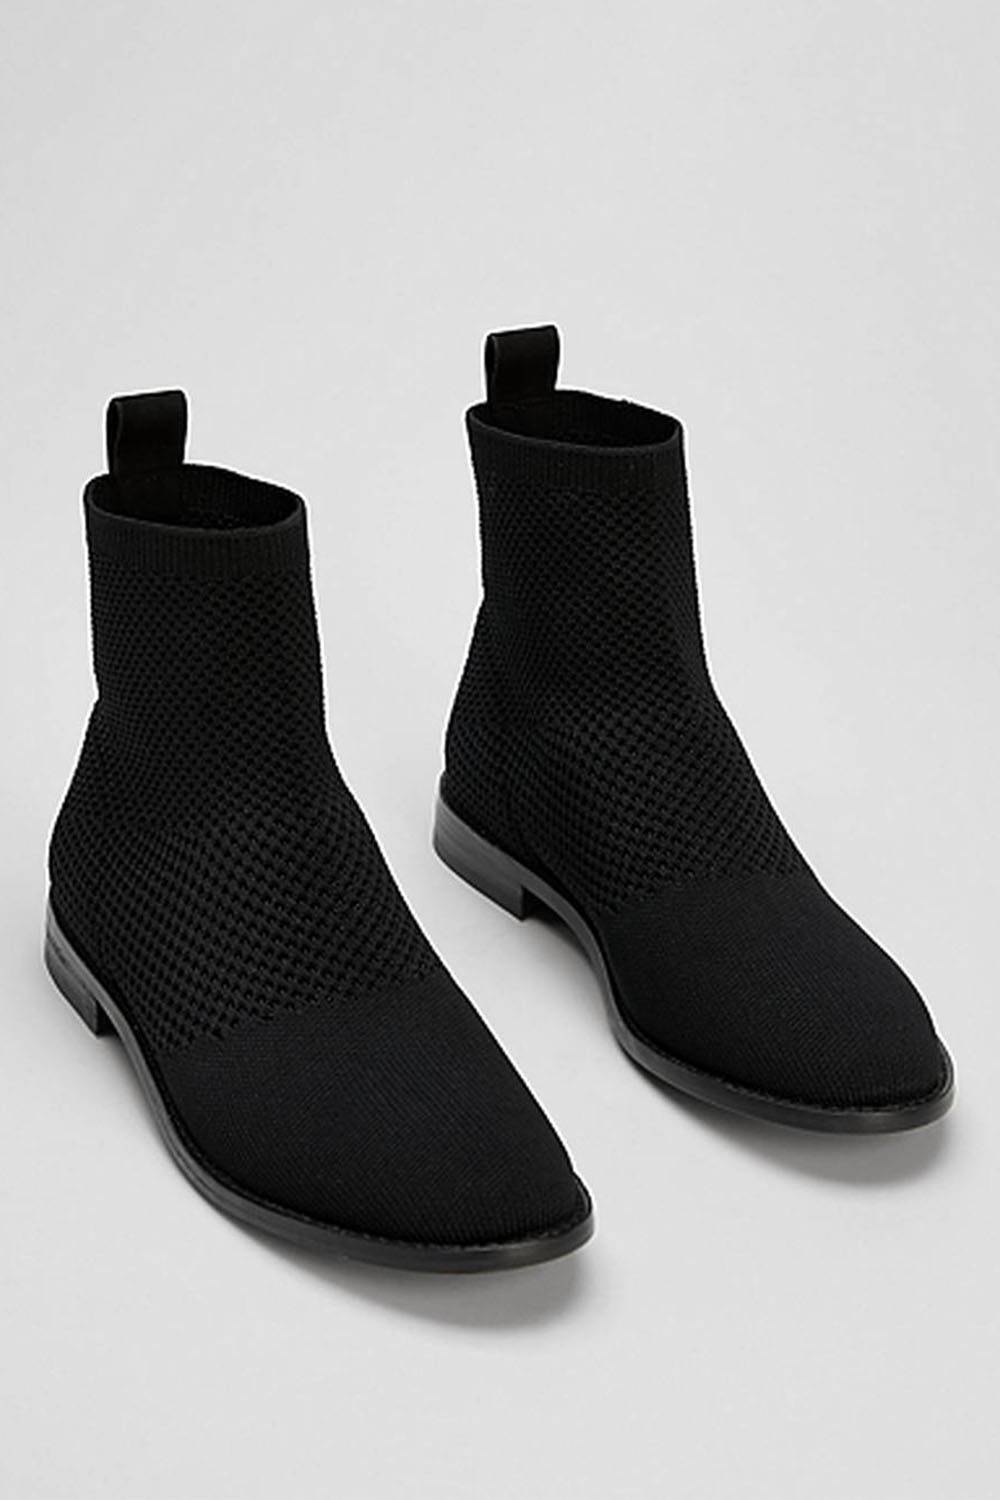 eileen fisher vegan leather boots